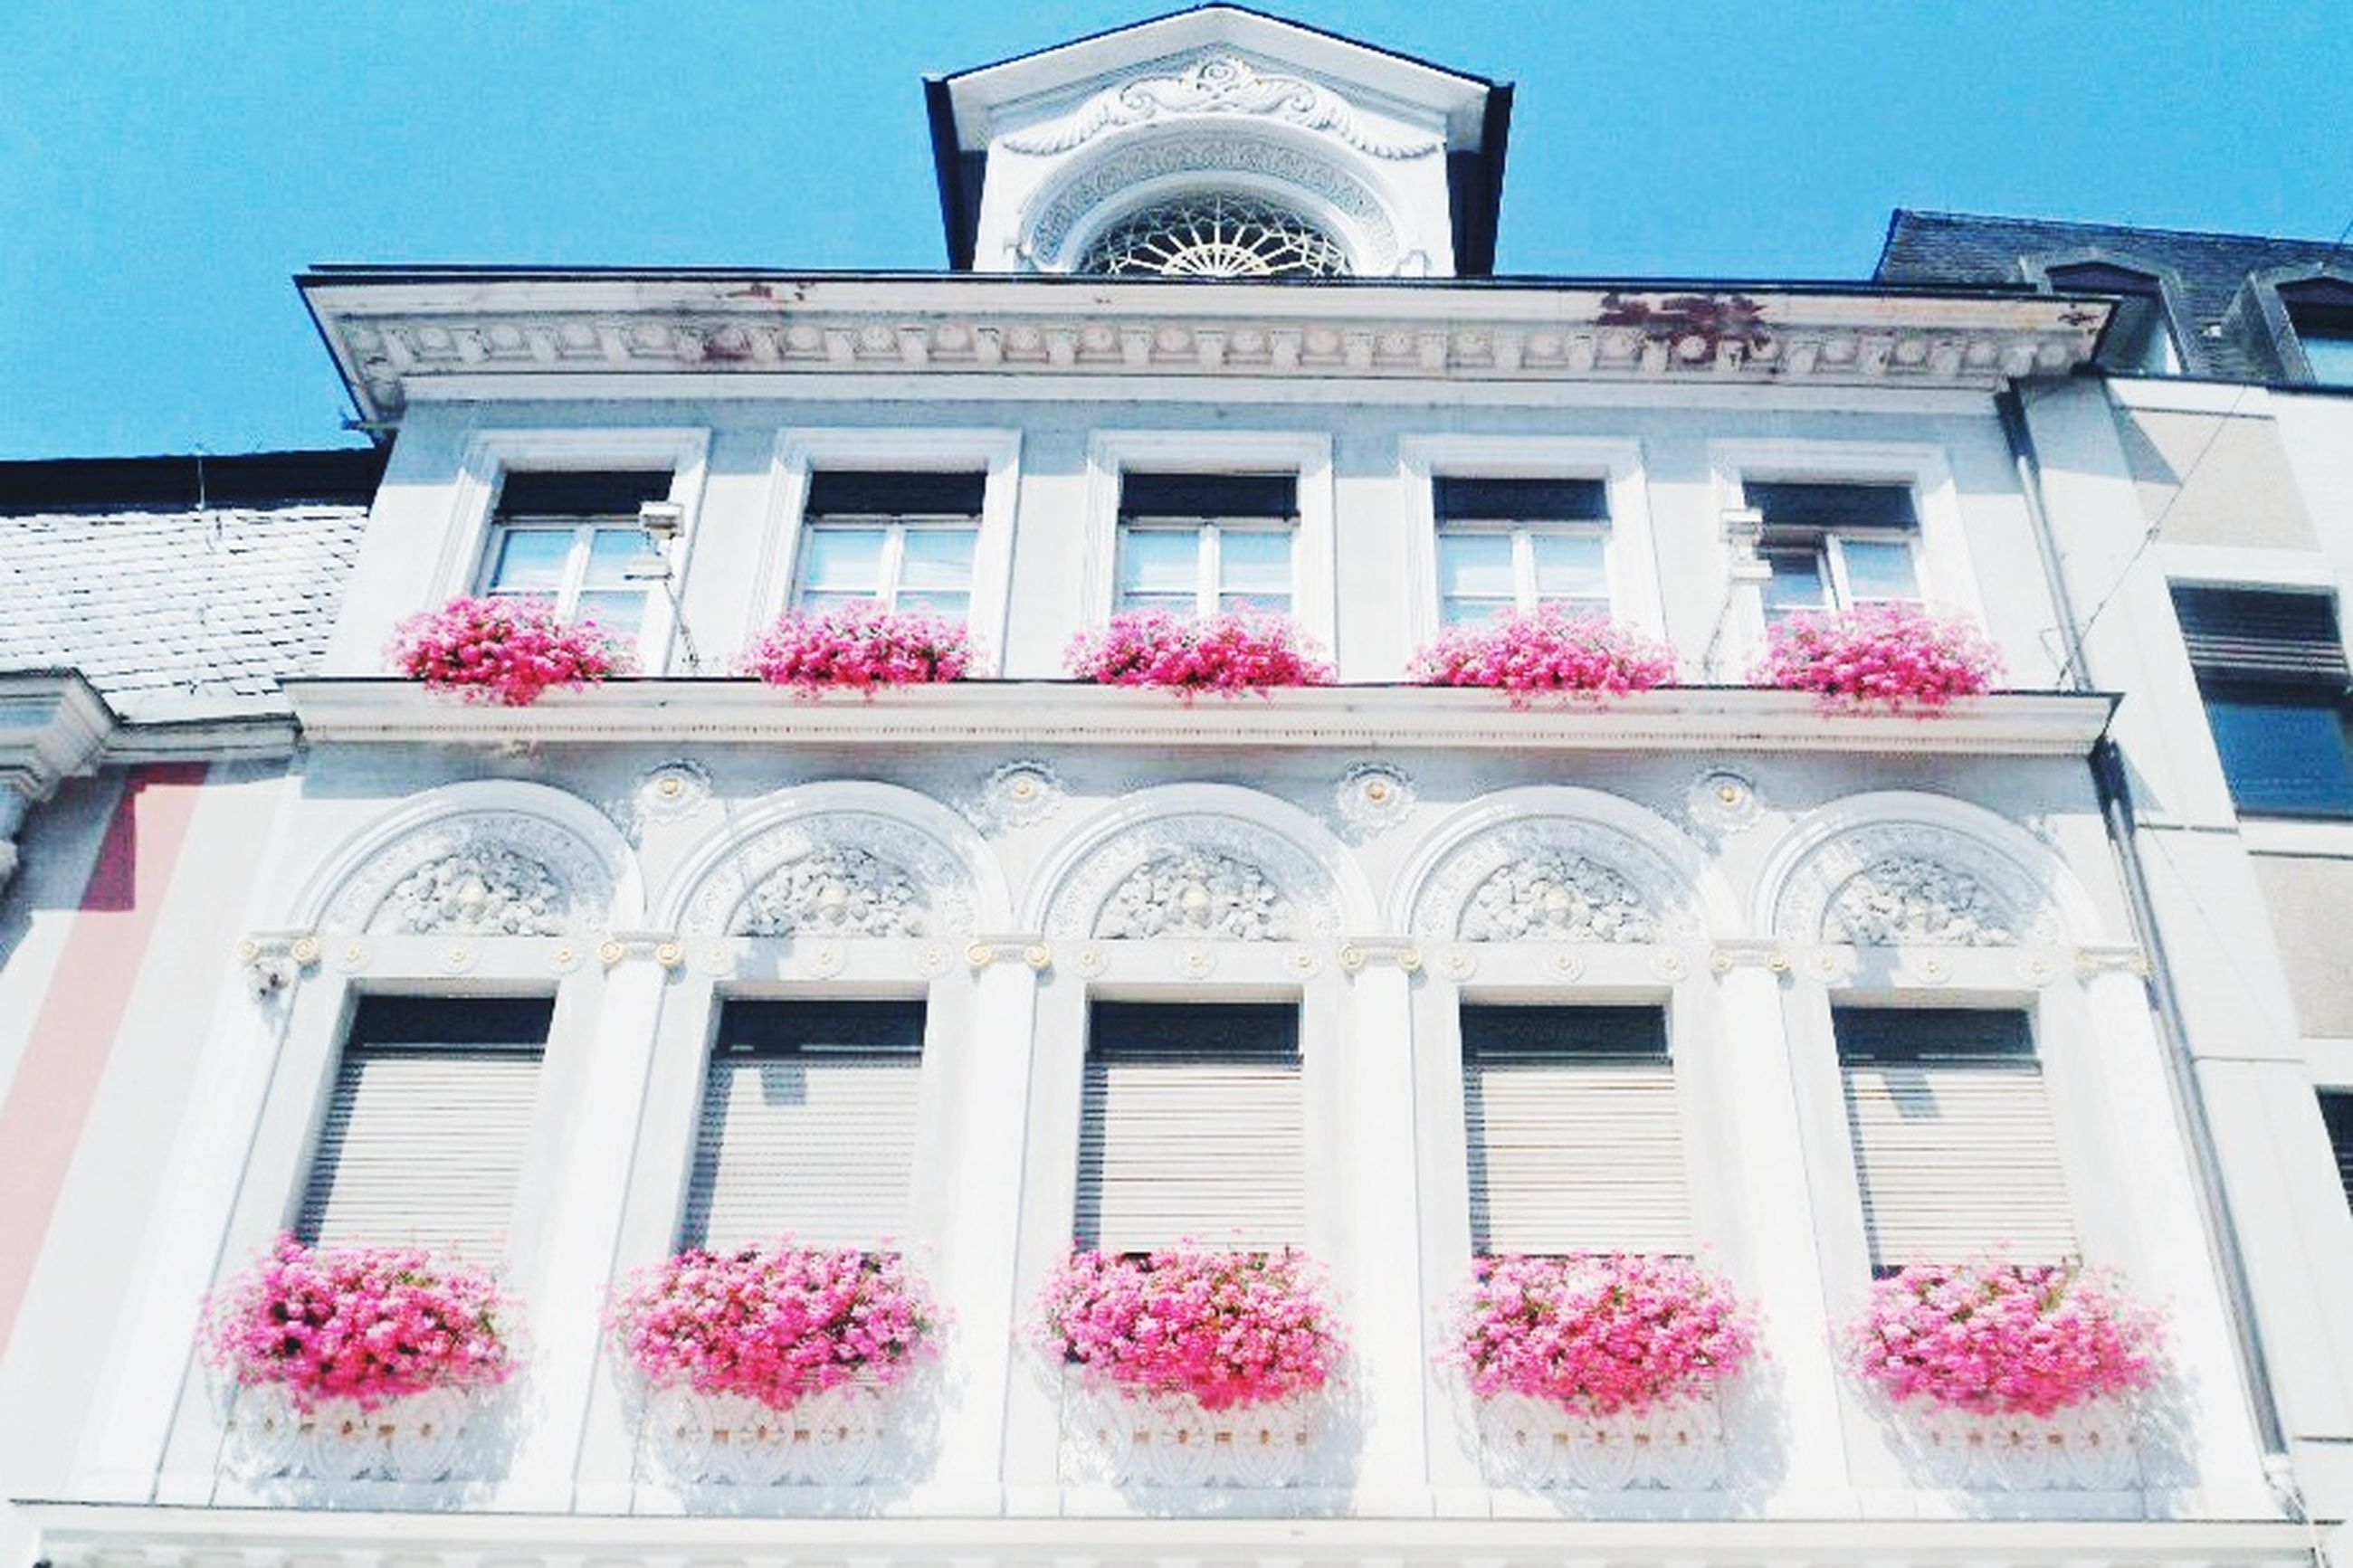 architecture, building exterior, built structure, low angle view, window, facade, sky, red, day, building, arch, outdoors, city, ornate, no people, clear sky, history, balcony, blue, sunlight